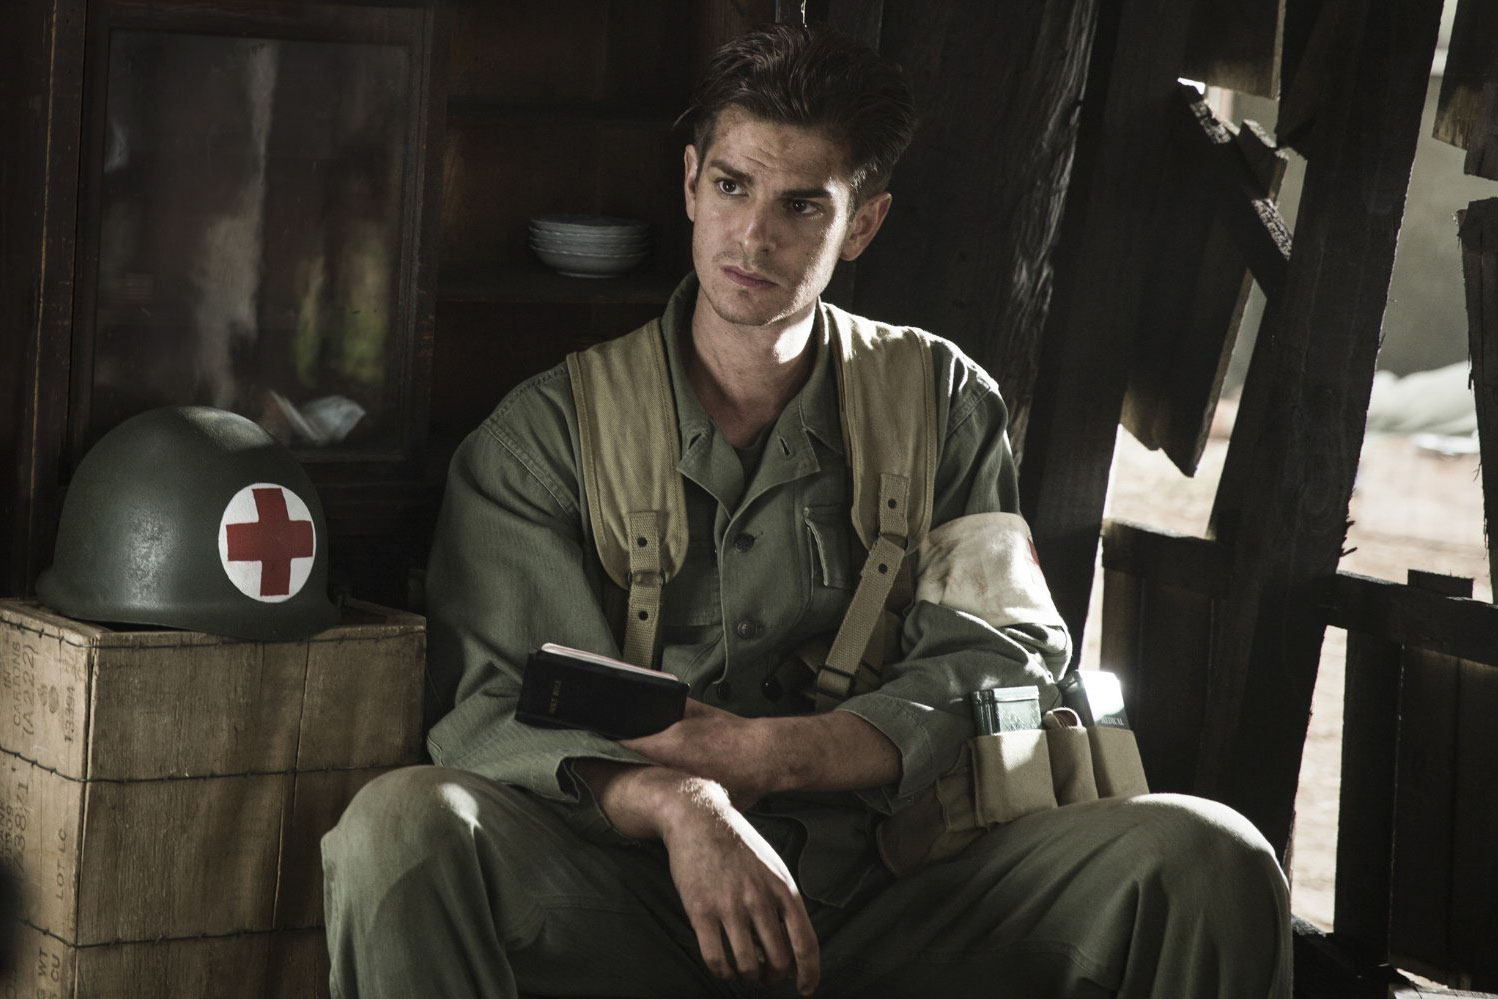 web-hacksaw-ridge-movie-2016-still-002-cross-creek-pictures-promo